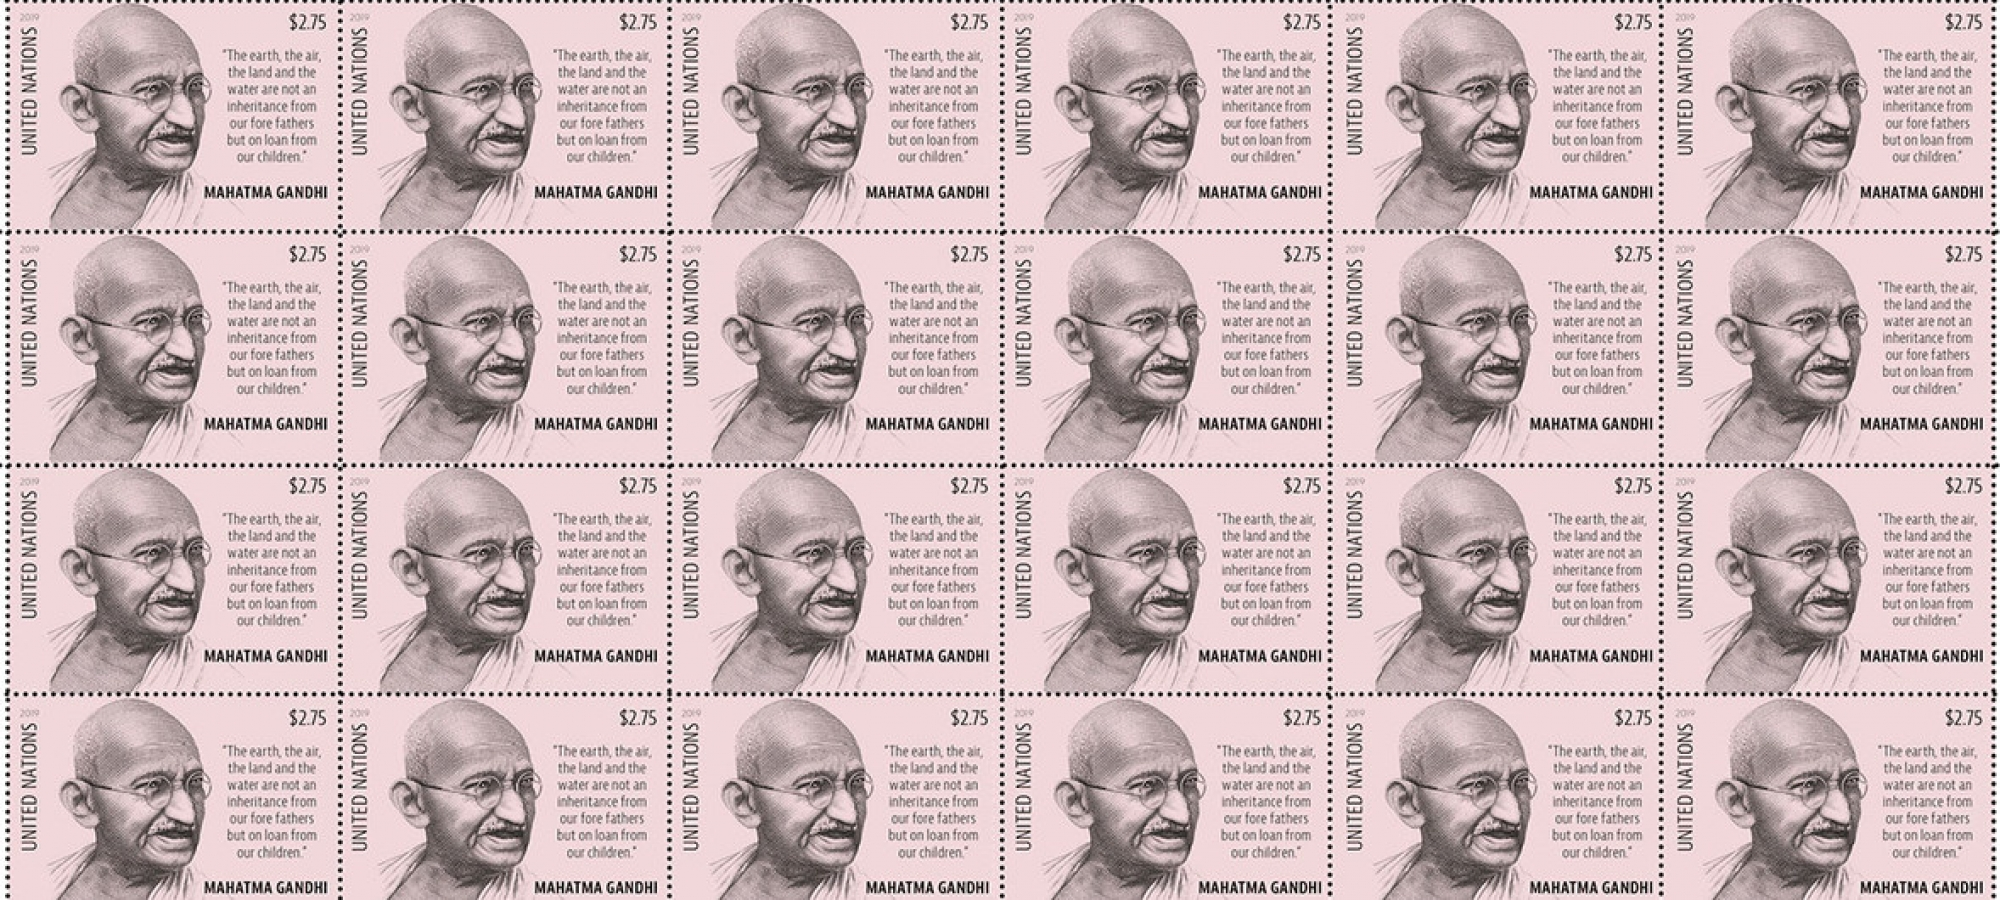 UN Postal Administration-issued stamp of Mahatma Gandhi in Commemoration of International Day of Non-Violence. (2 October 2019)